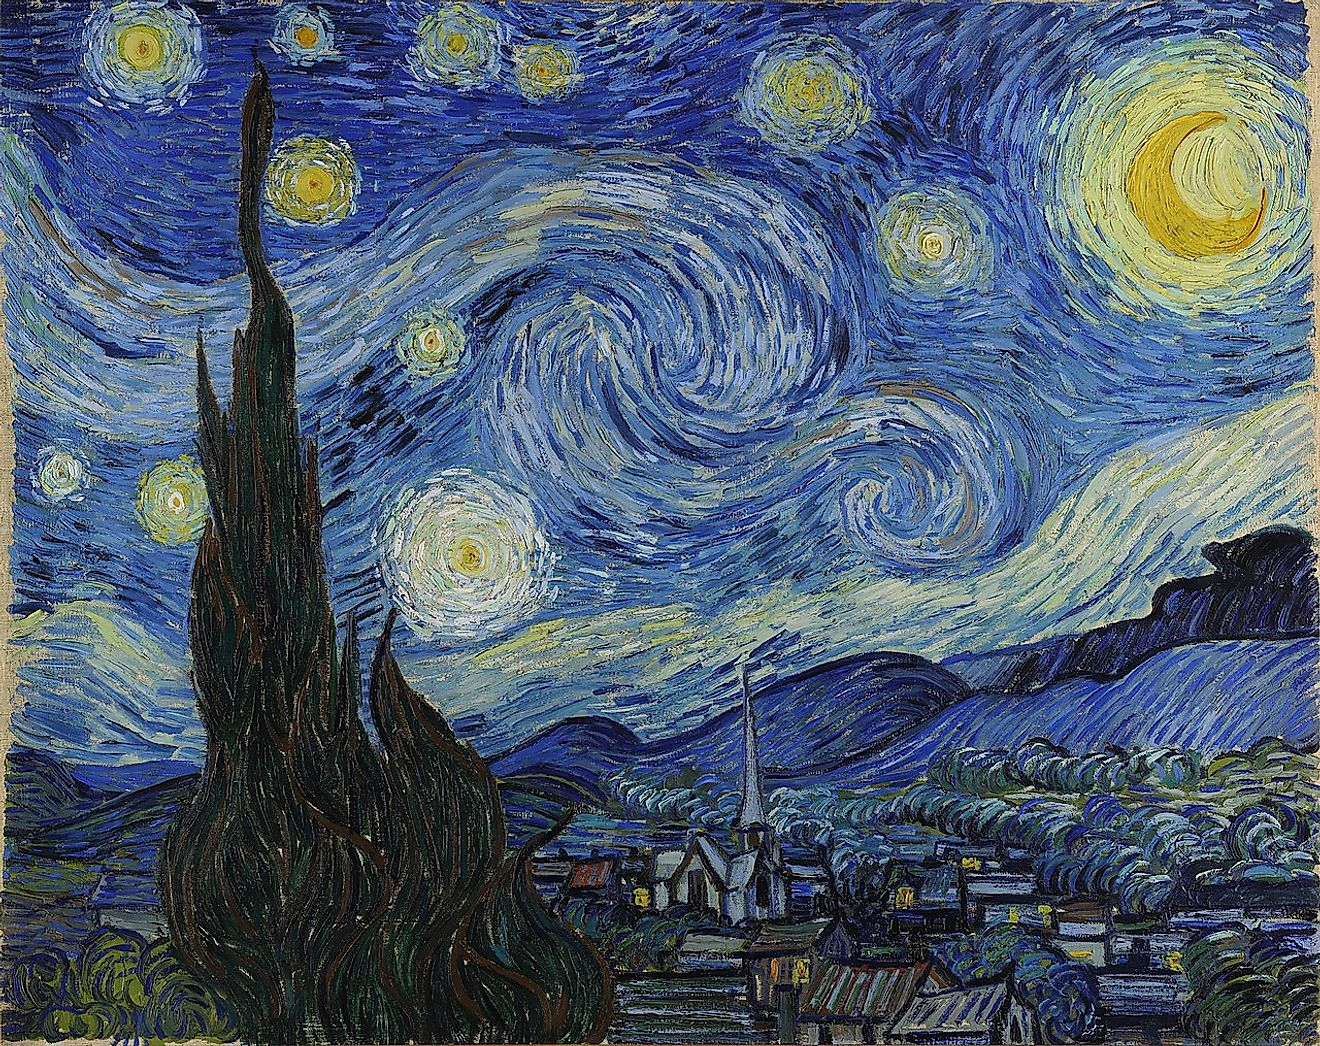 The Starry Night, a famous painting by Vincent Van Gogh.